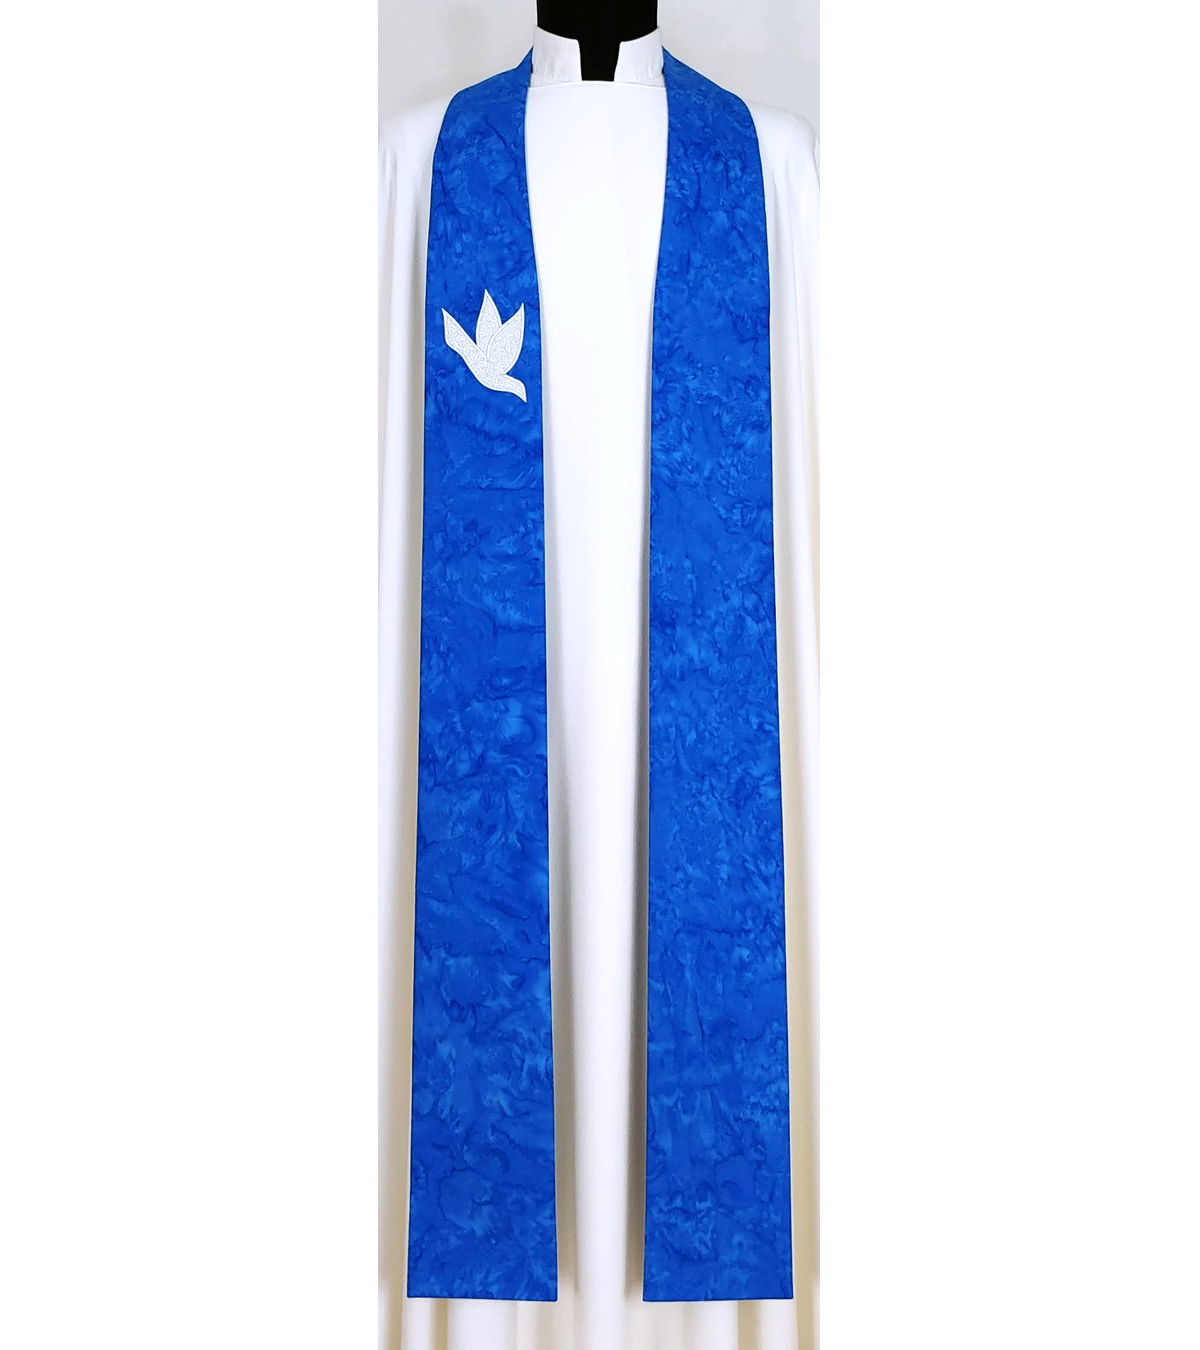 And on Earth, Peace: Medium Blue Clergy Stole for Advent with White Dove Design